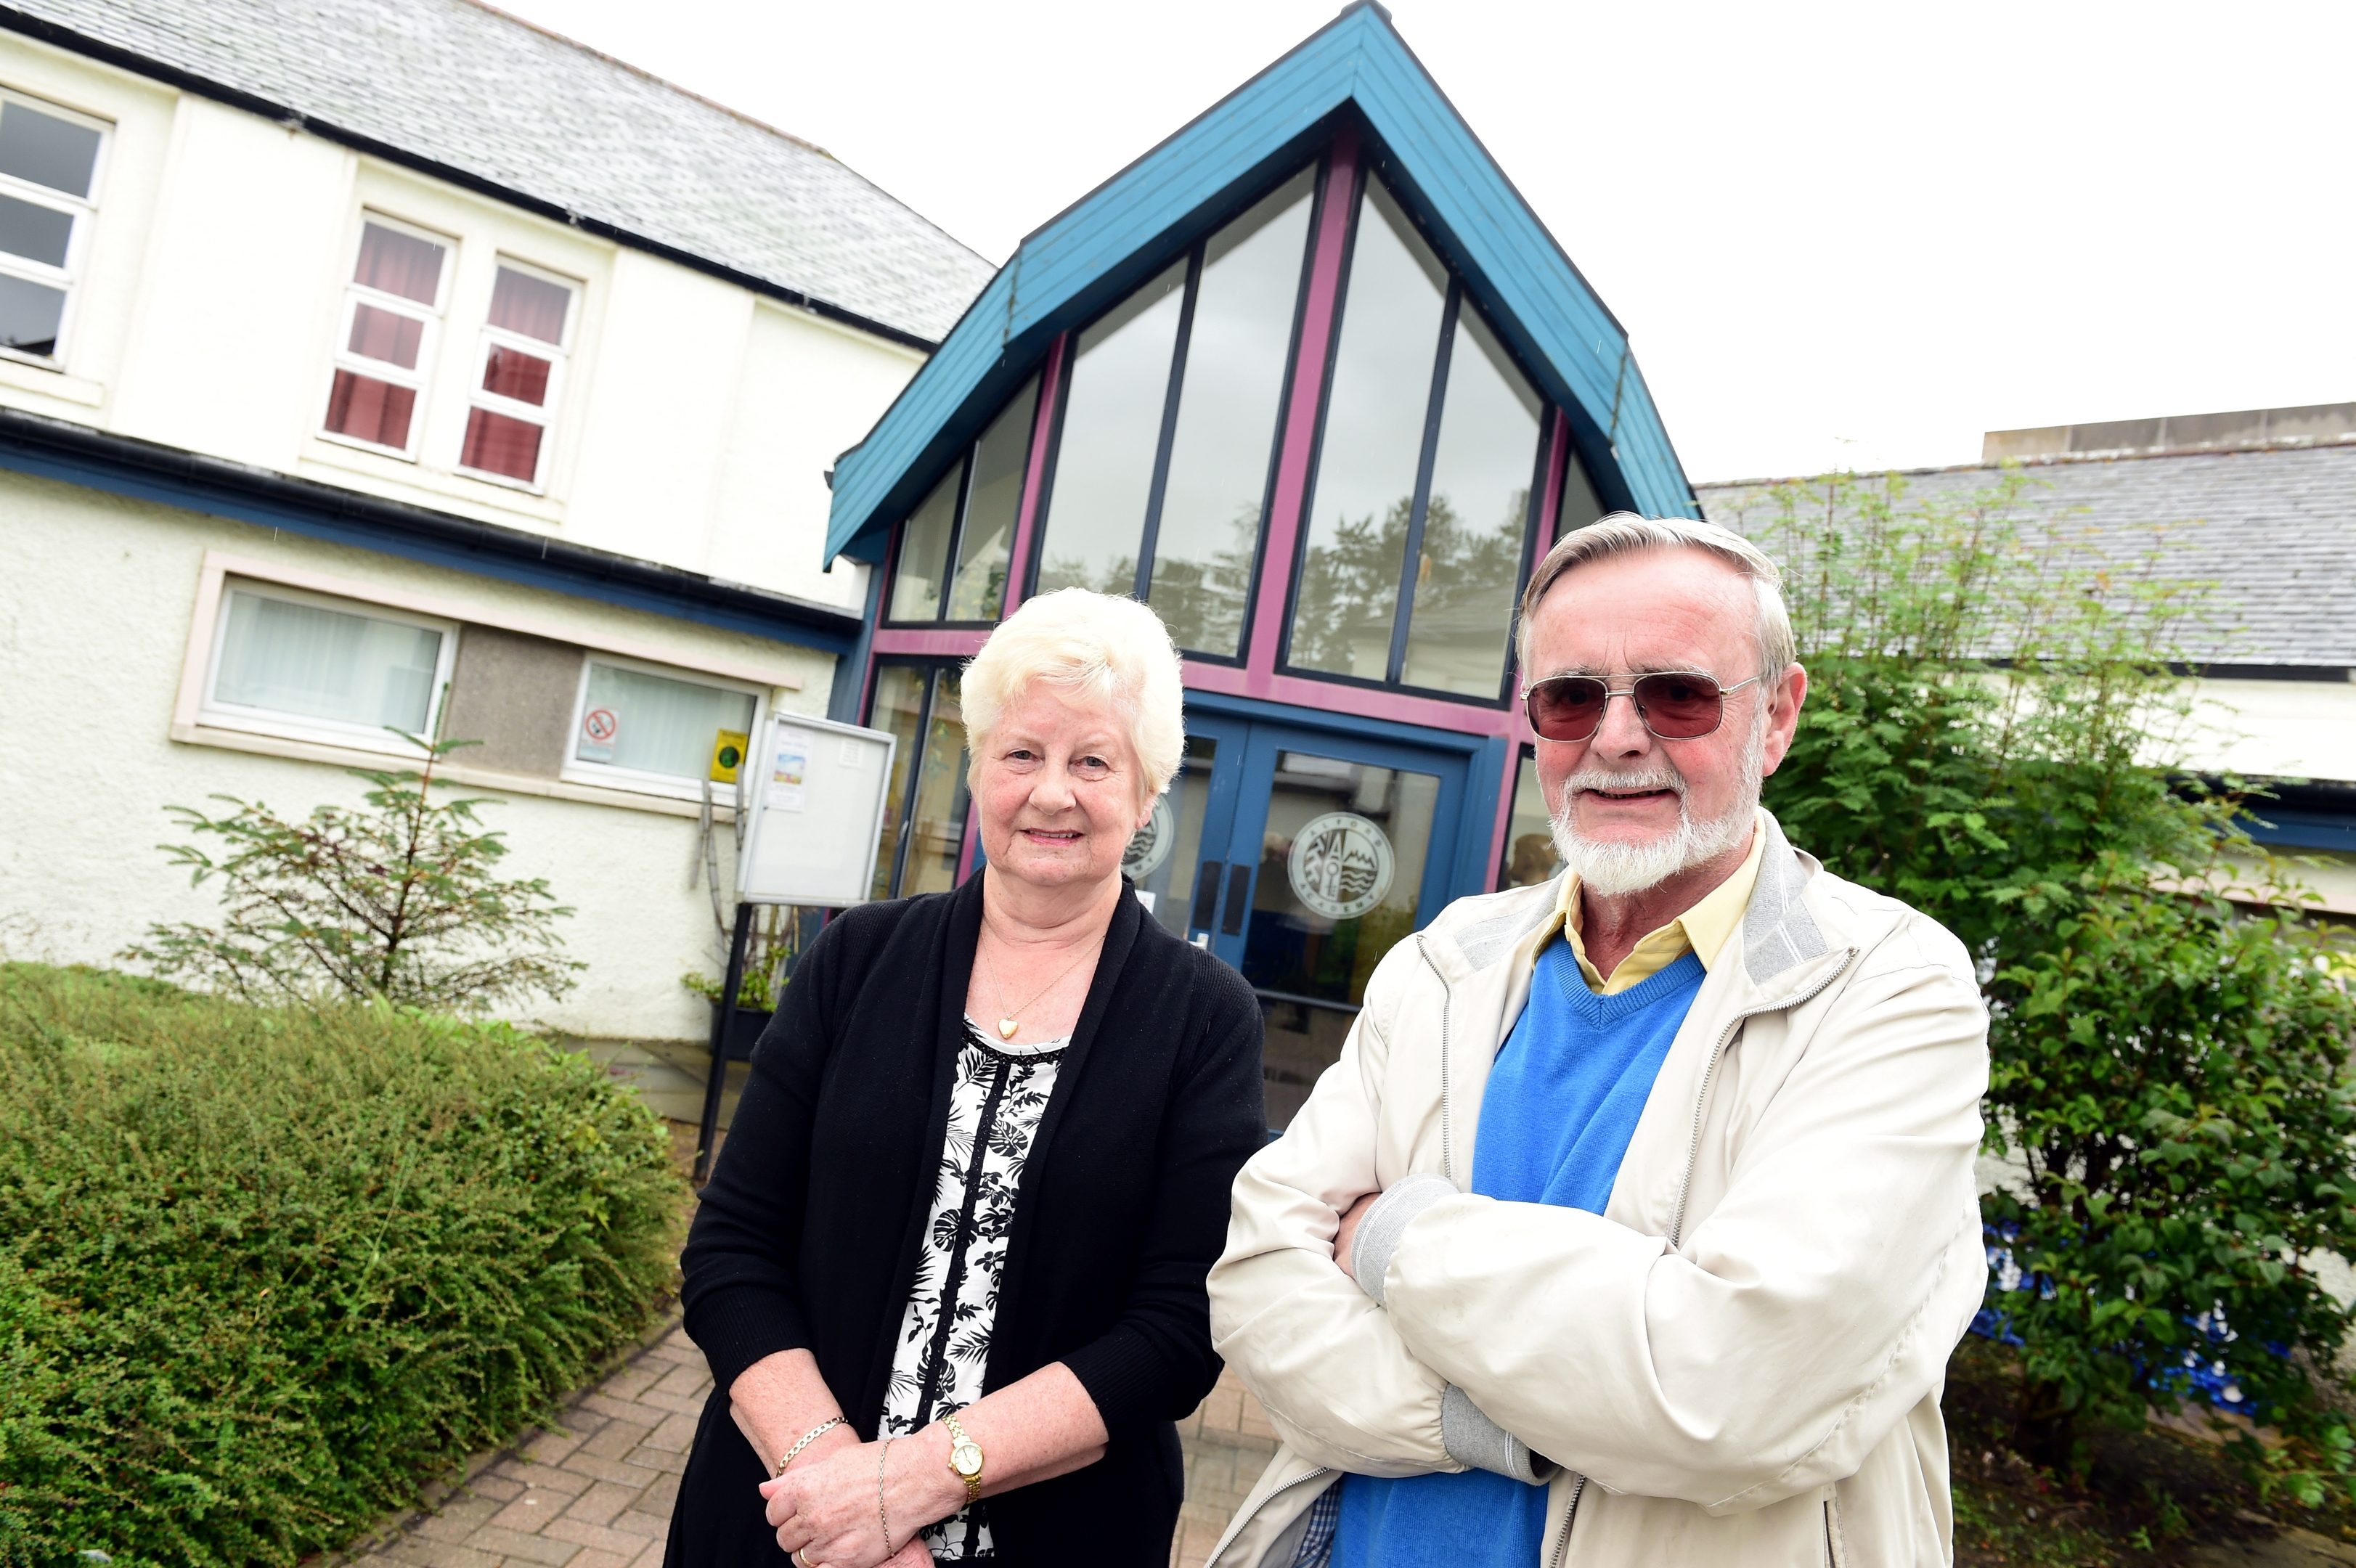 Chriistine Mathers (left) and Mike Barron have made an appeal for the class of 55-56 to get together for a reunion as the old Alford Academy prepares to close it's doors for good.       Picture by Kami Thomson    14-08-15